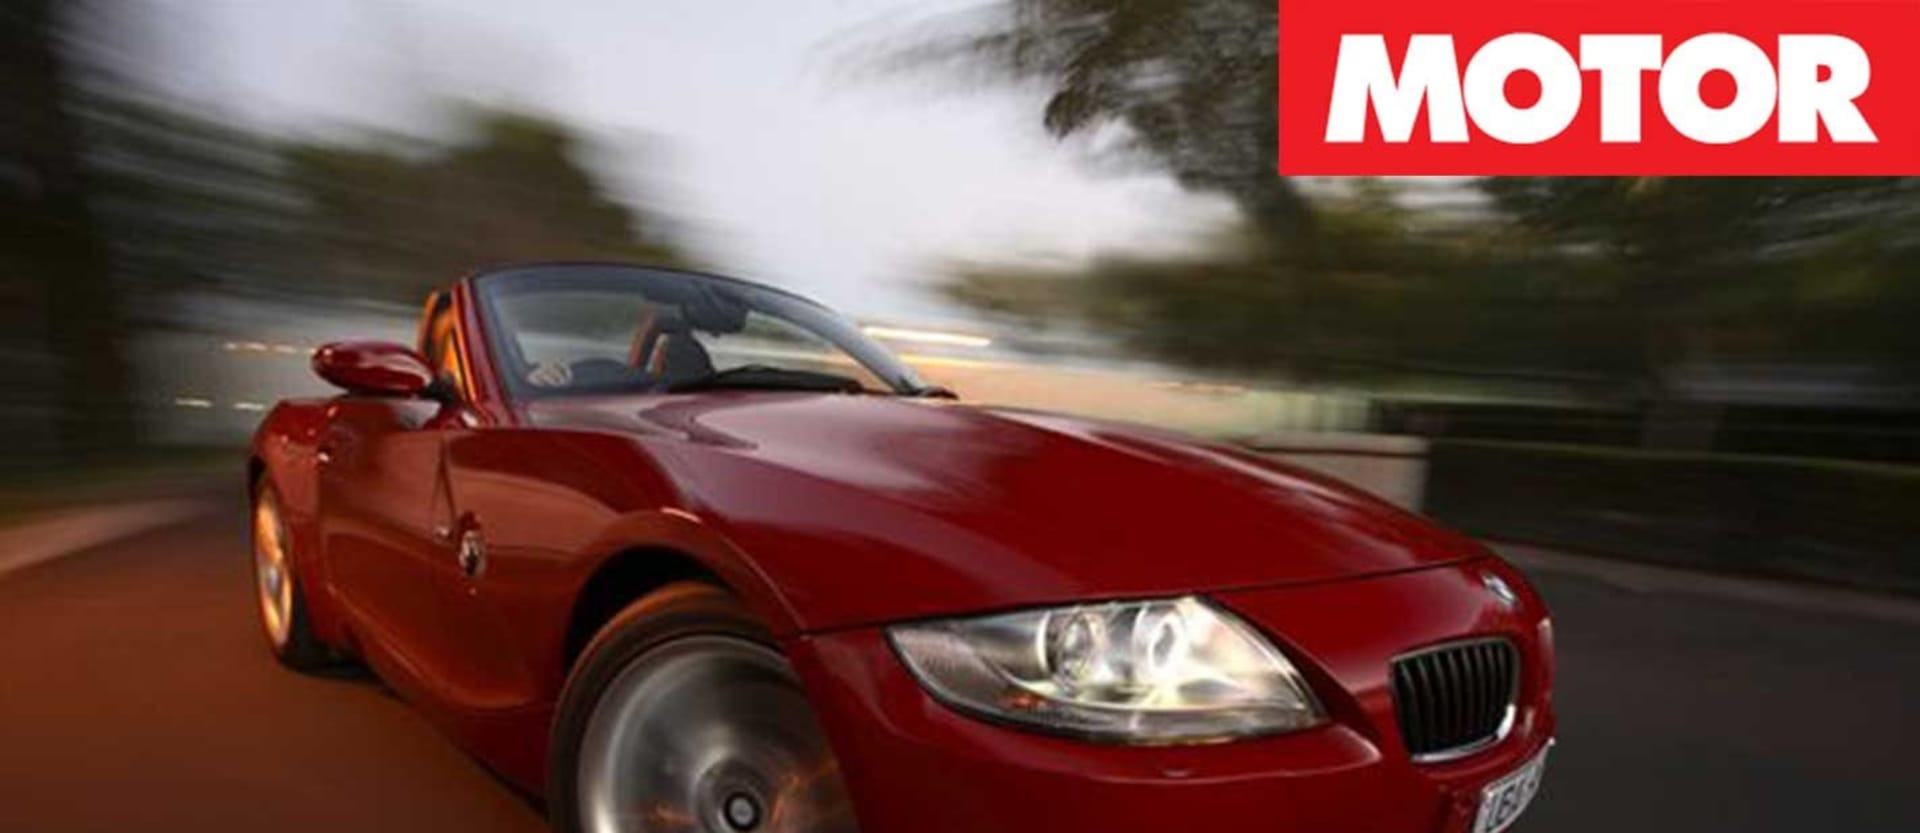 2006 BMW Z4 M roadster review classic MOTOR feature